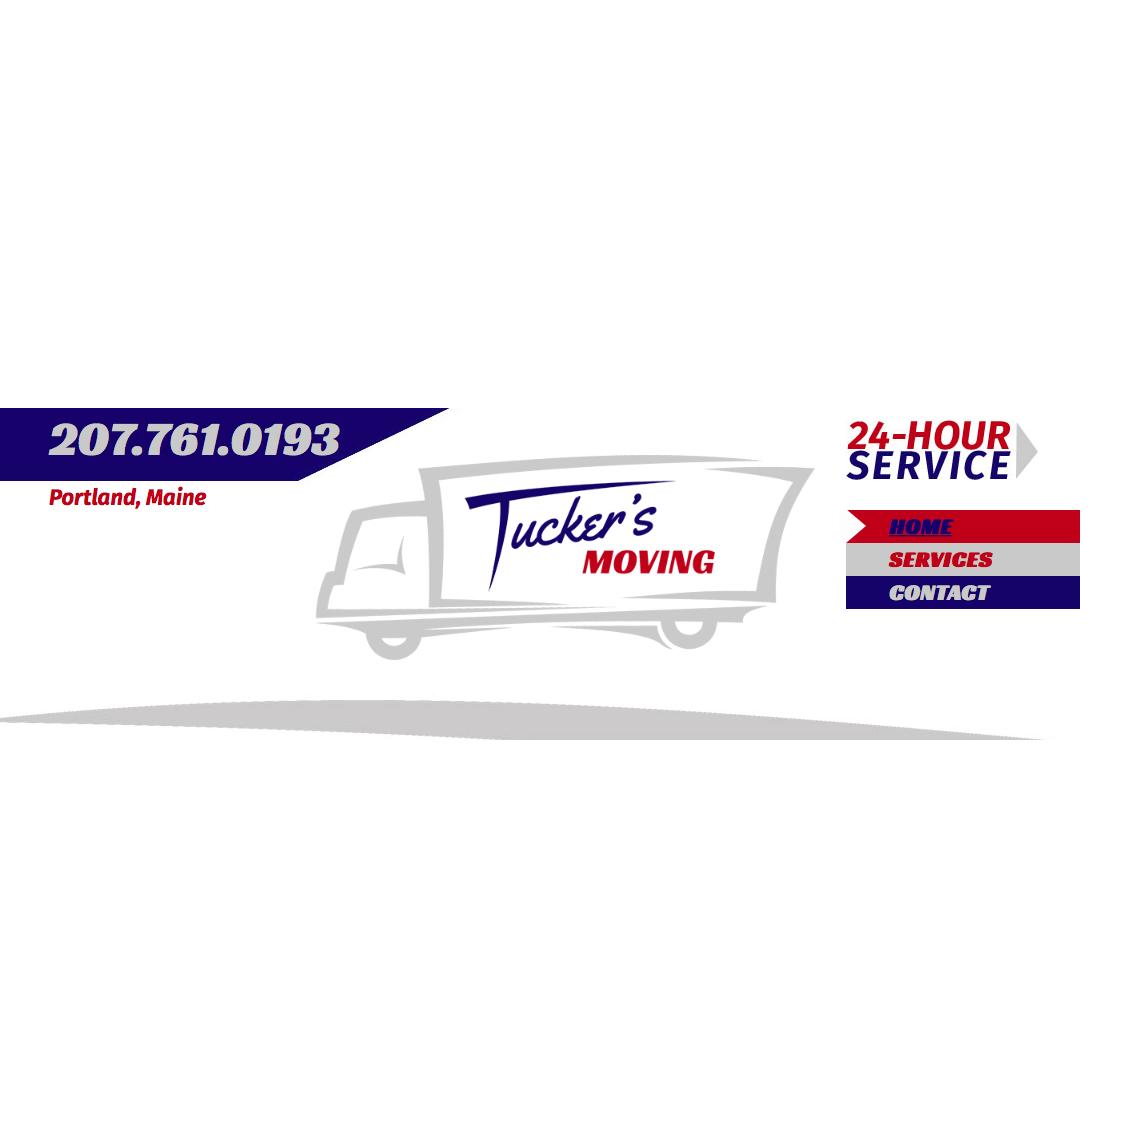 Tuckers Moving - Portland, ME - House Cleaning Services